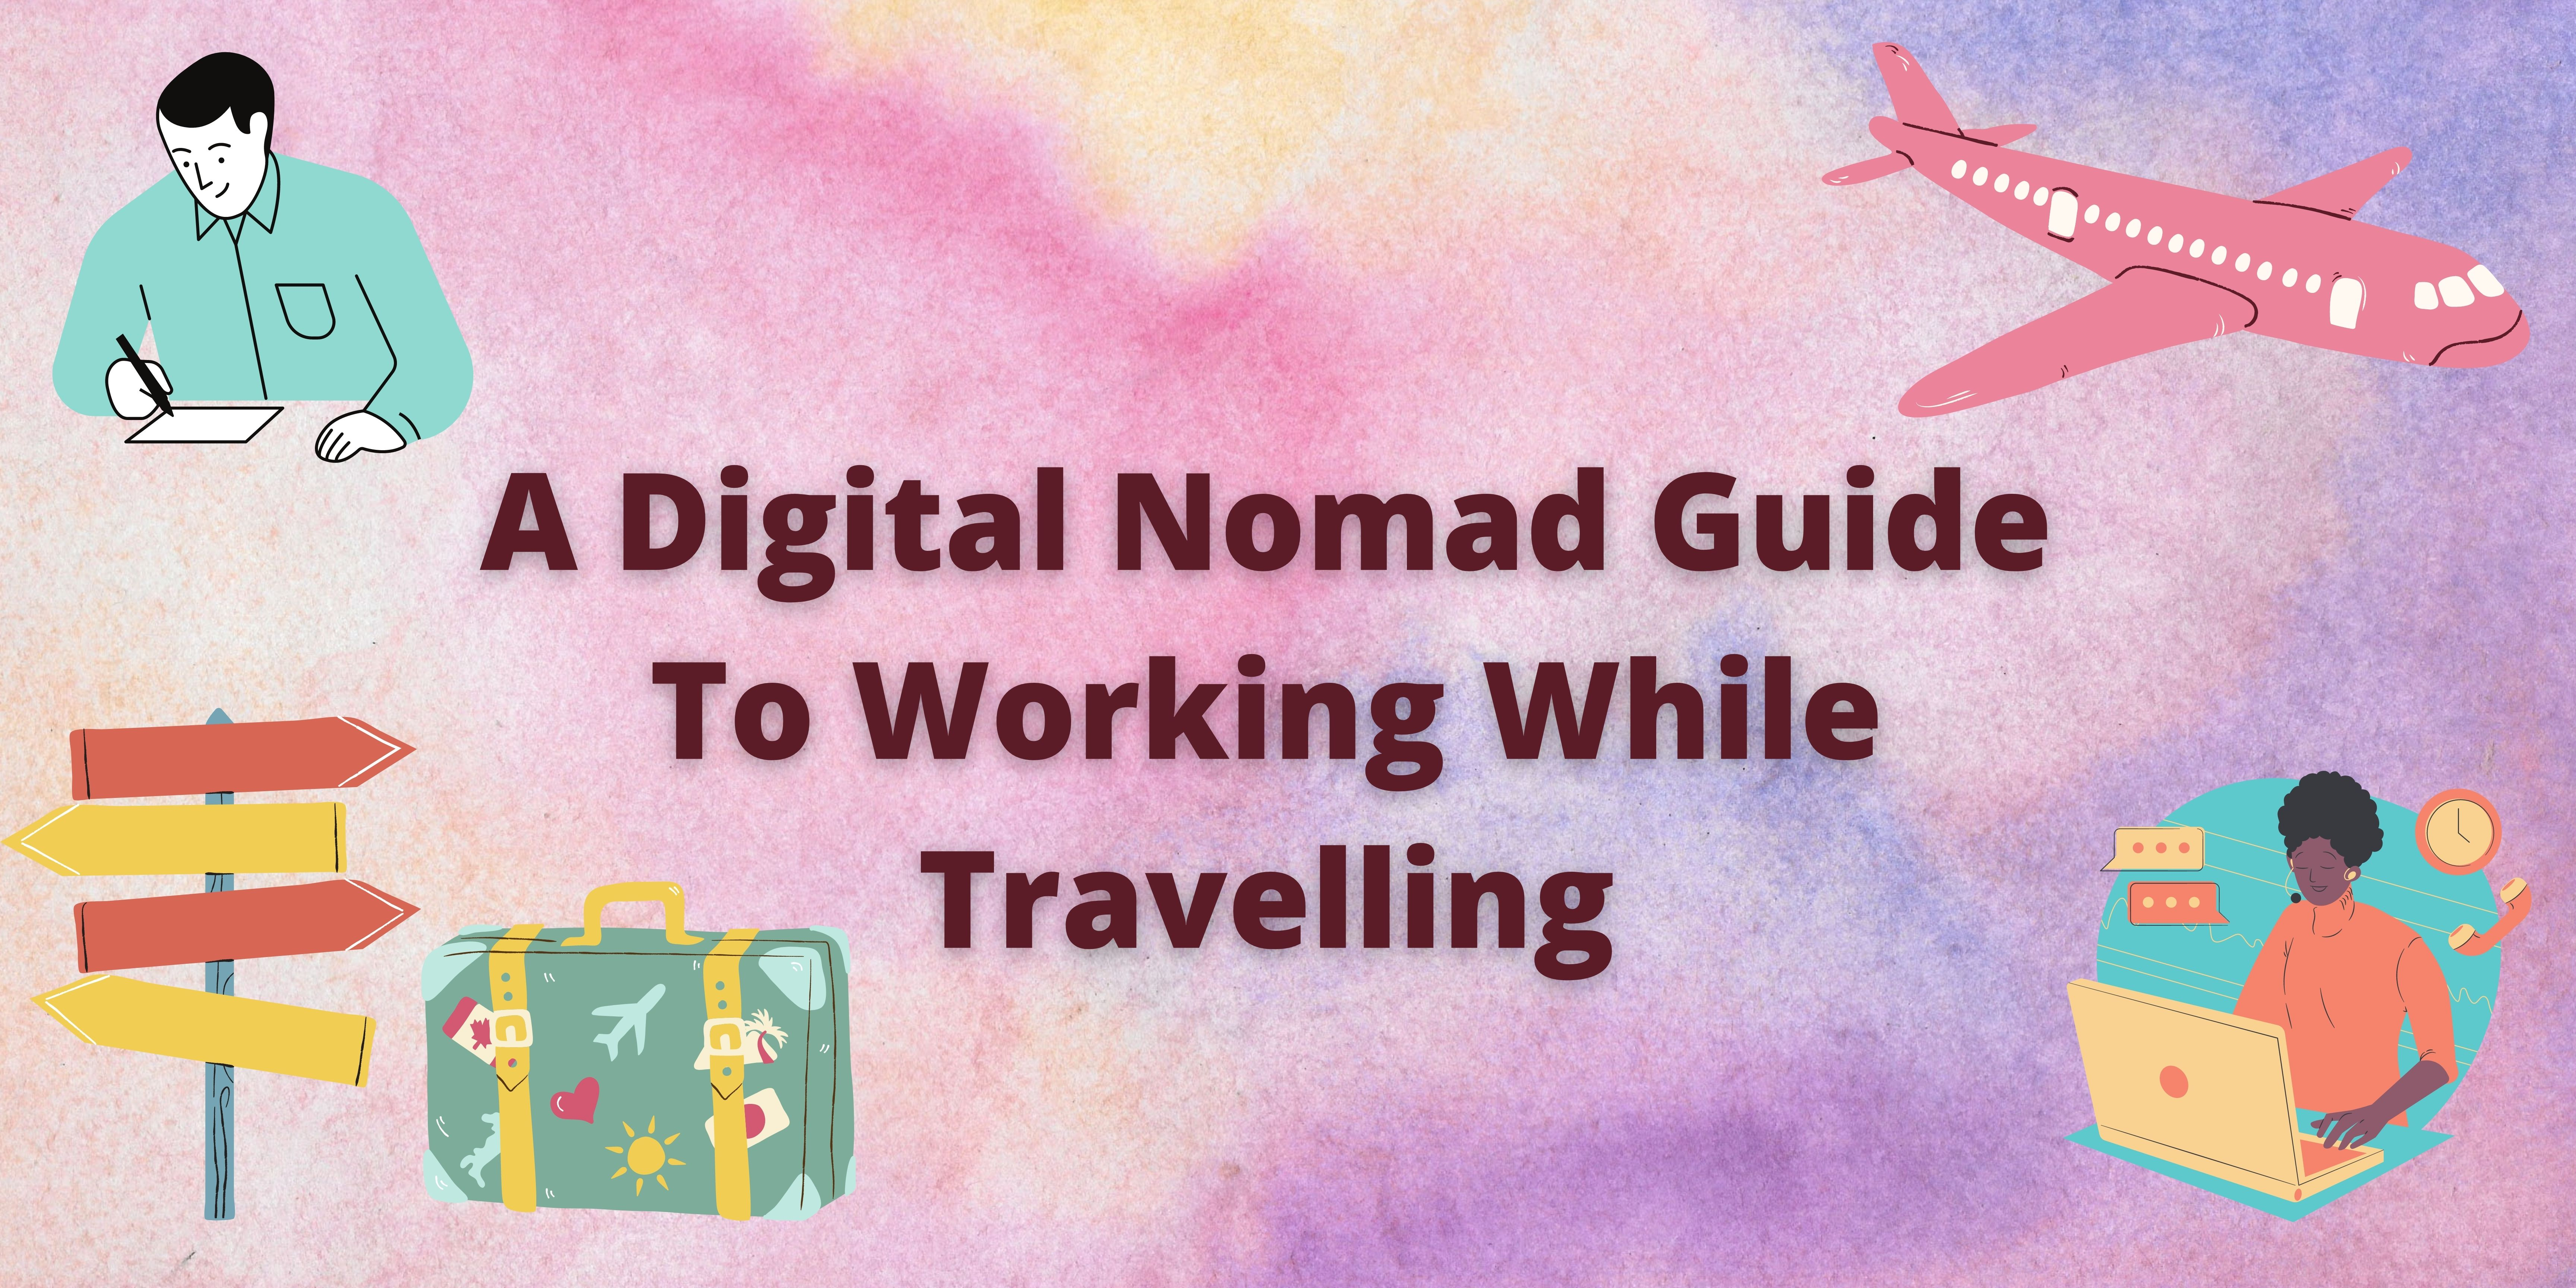 A Digital Nomad Guide To Working While Travelling